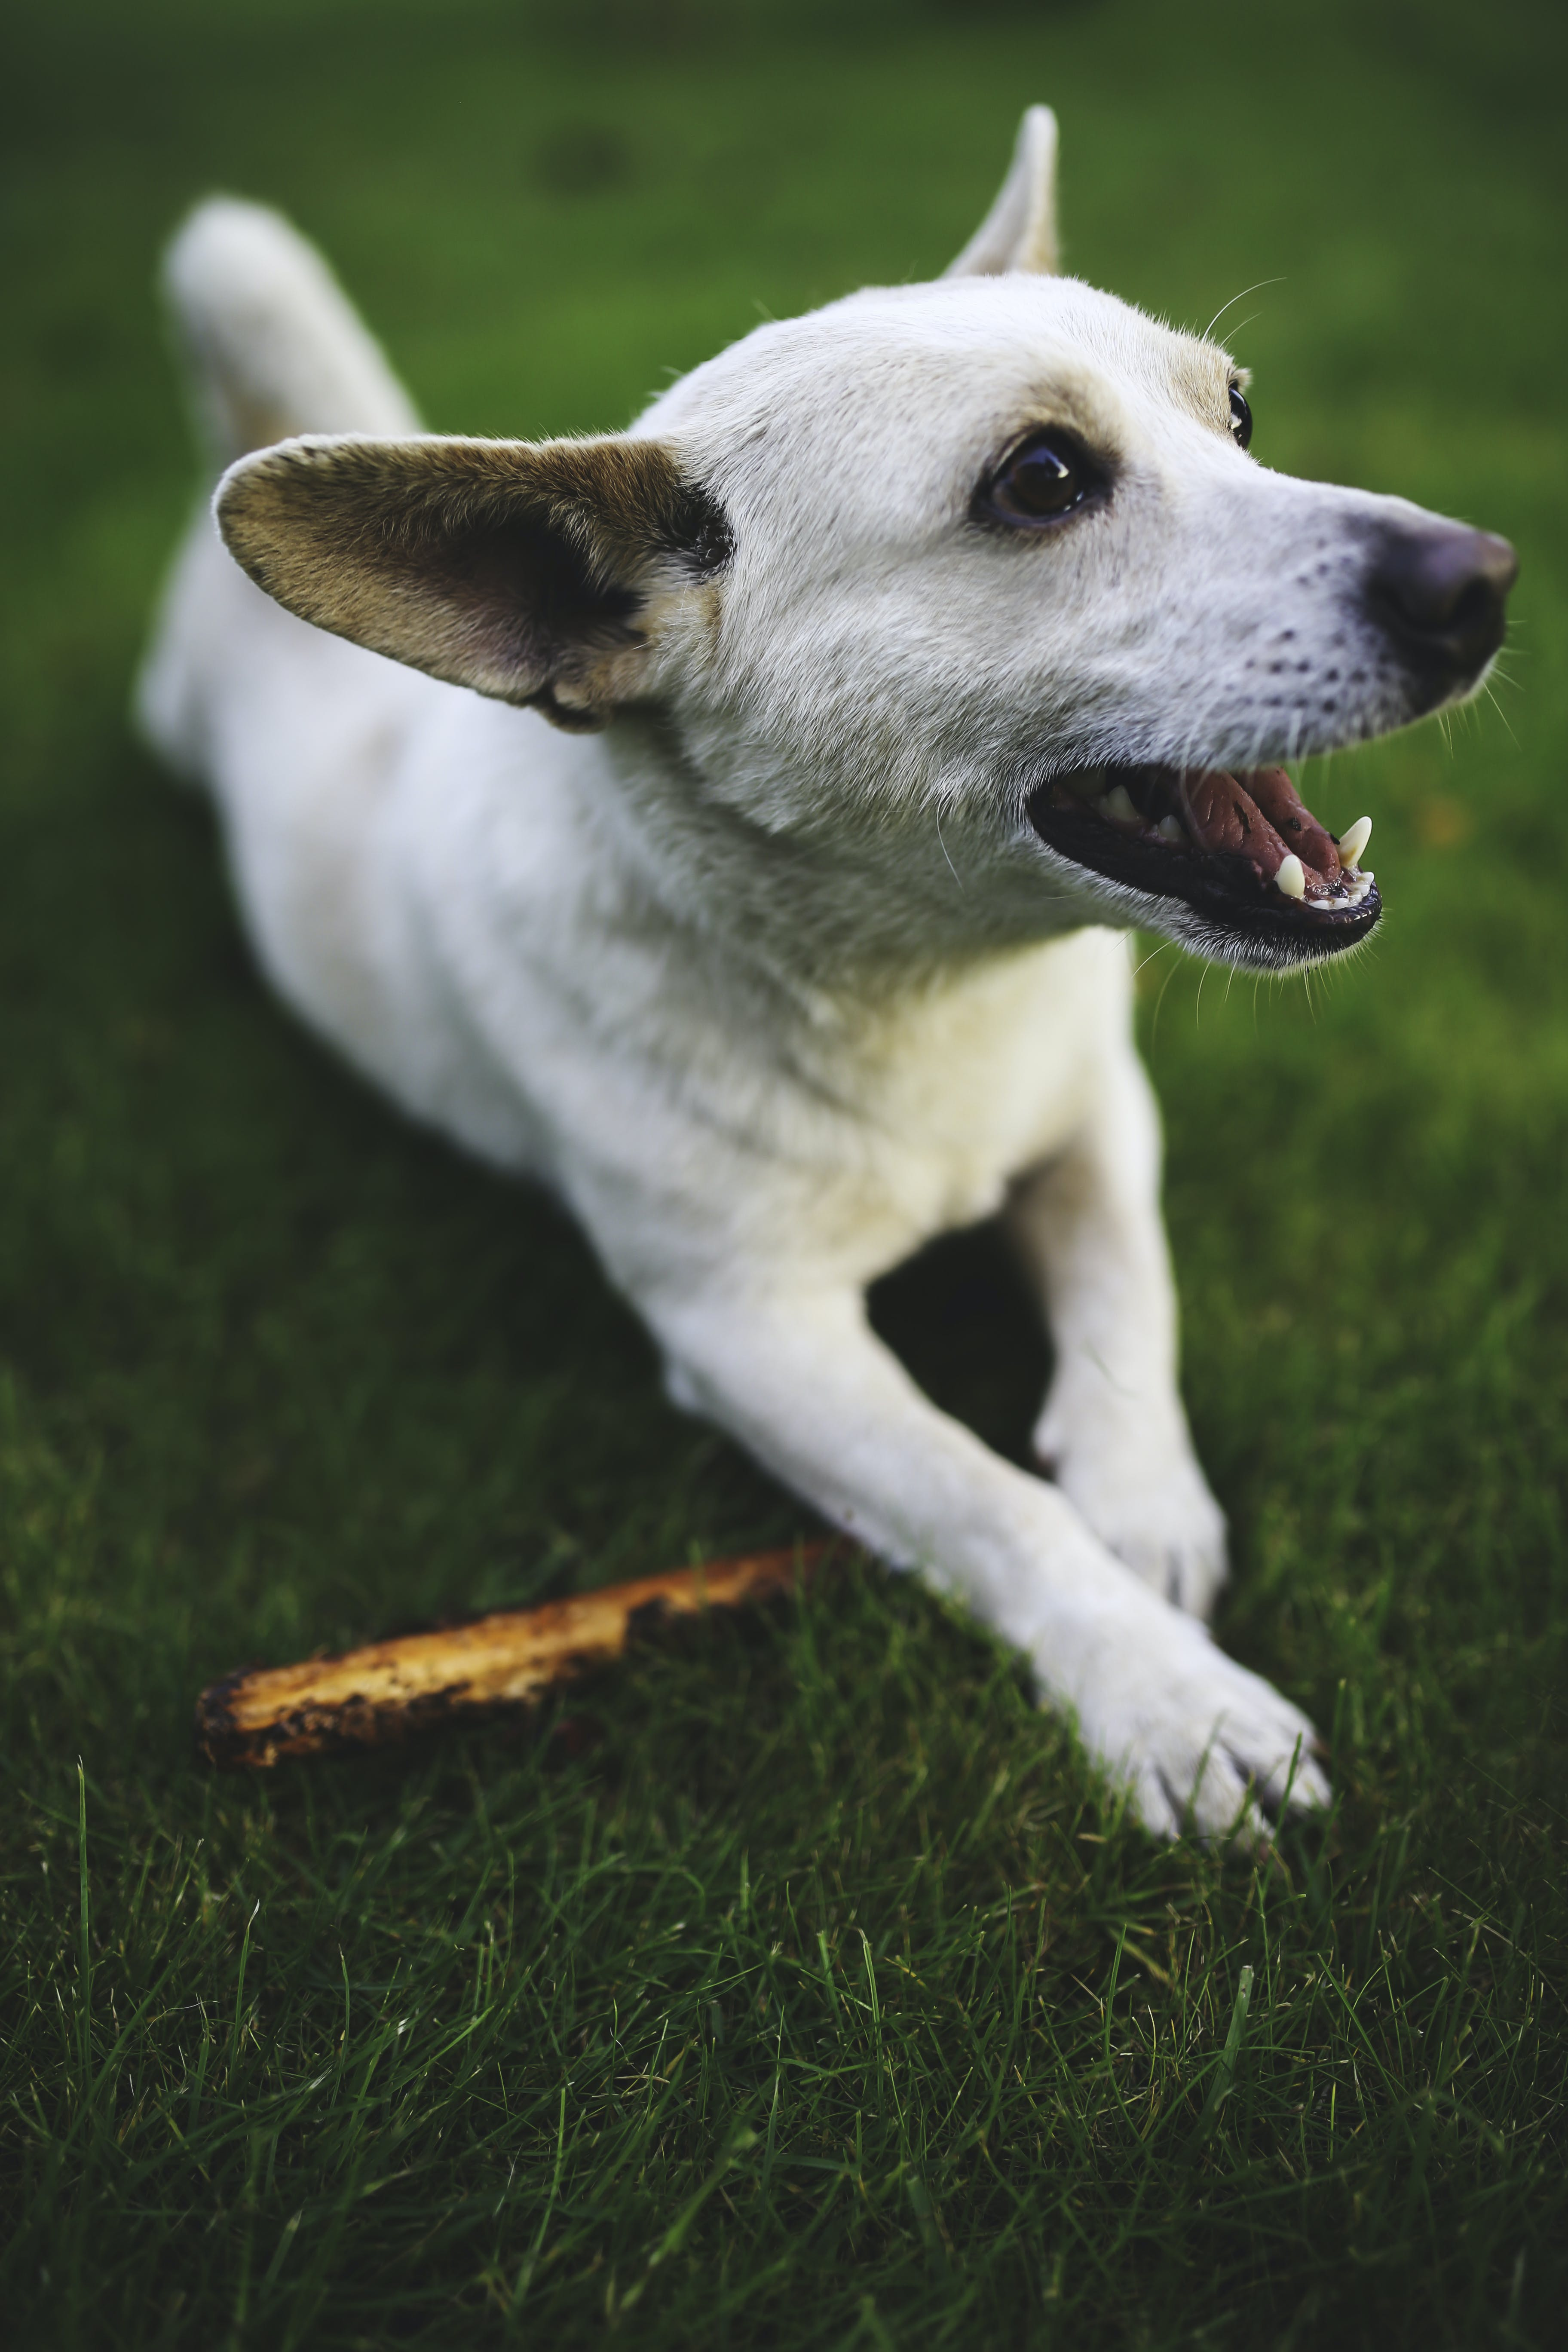 White dog with stick